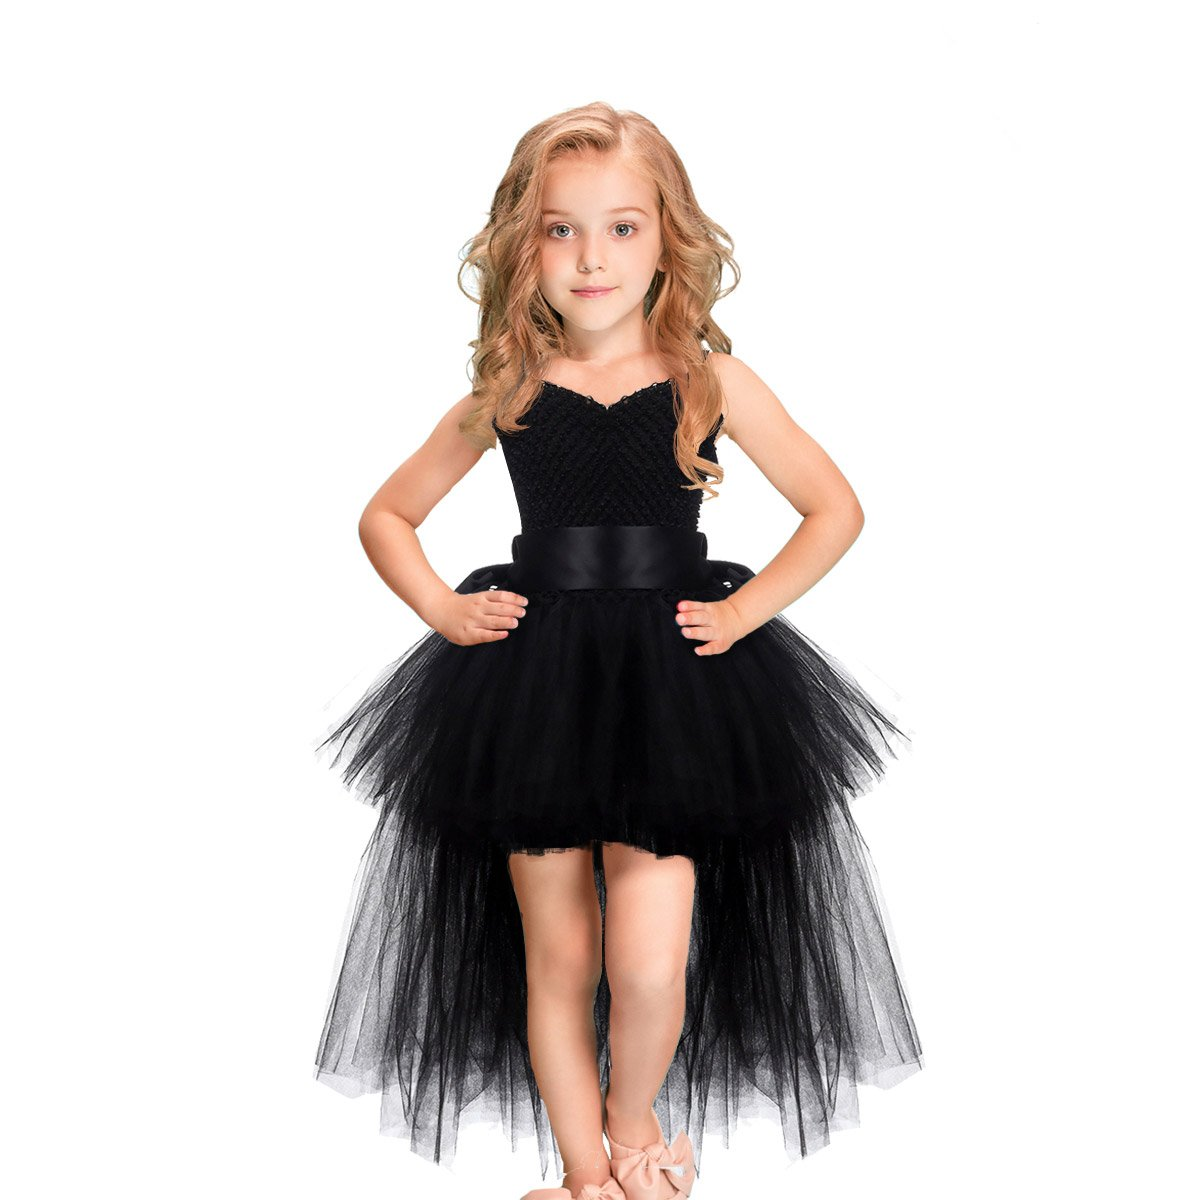 LEEGEEL Handmade Baby Flower Girls Tulle Tutu Dresses With Sunglasses For Birthday Party,Photography Prop, Black, Size 3-4T